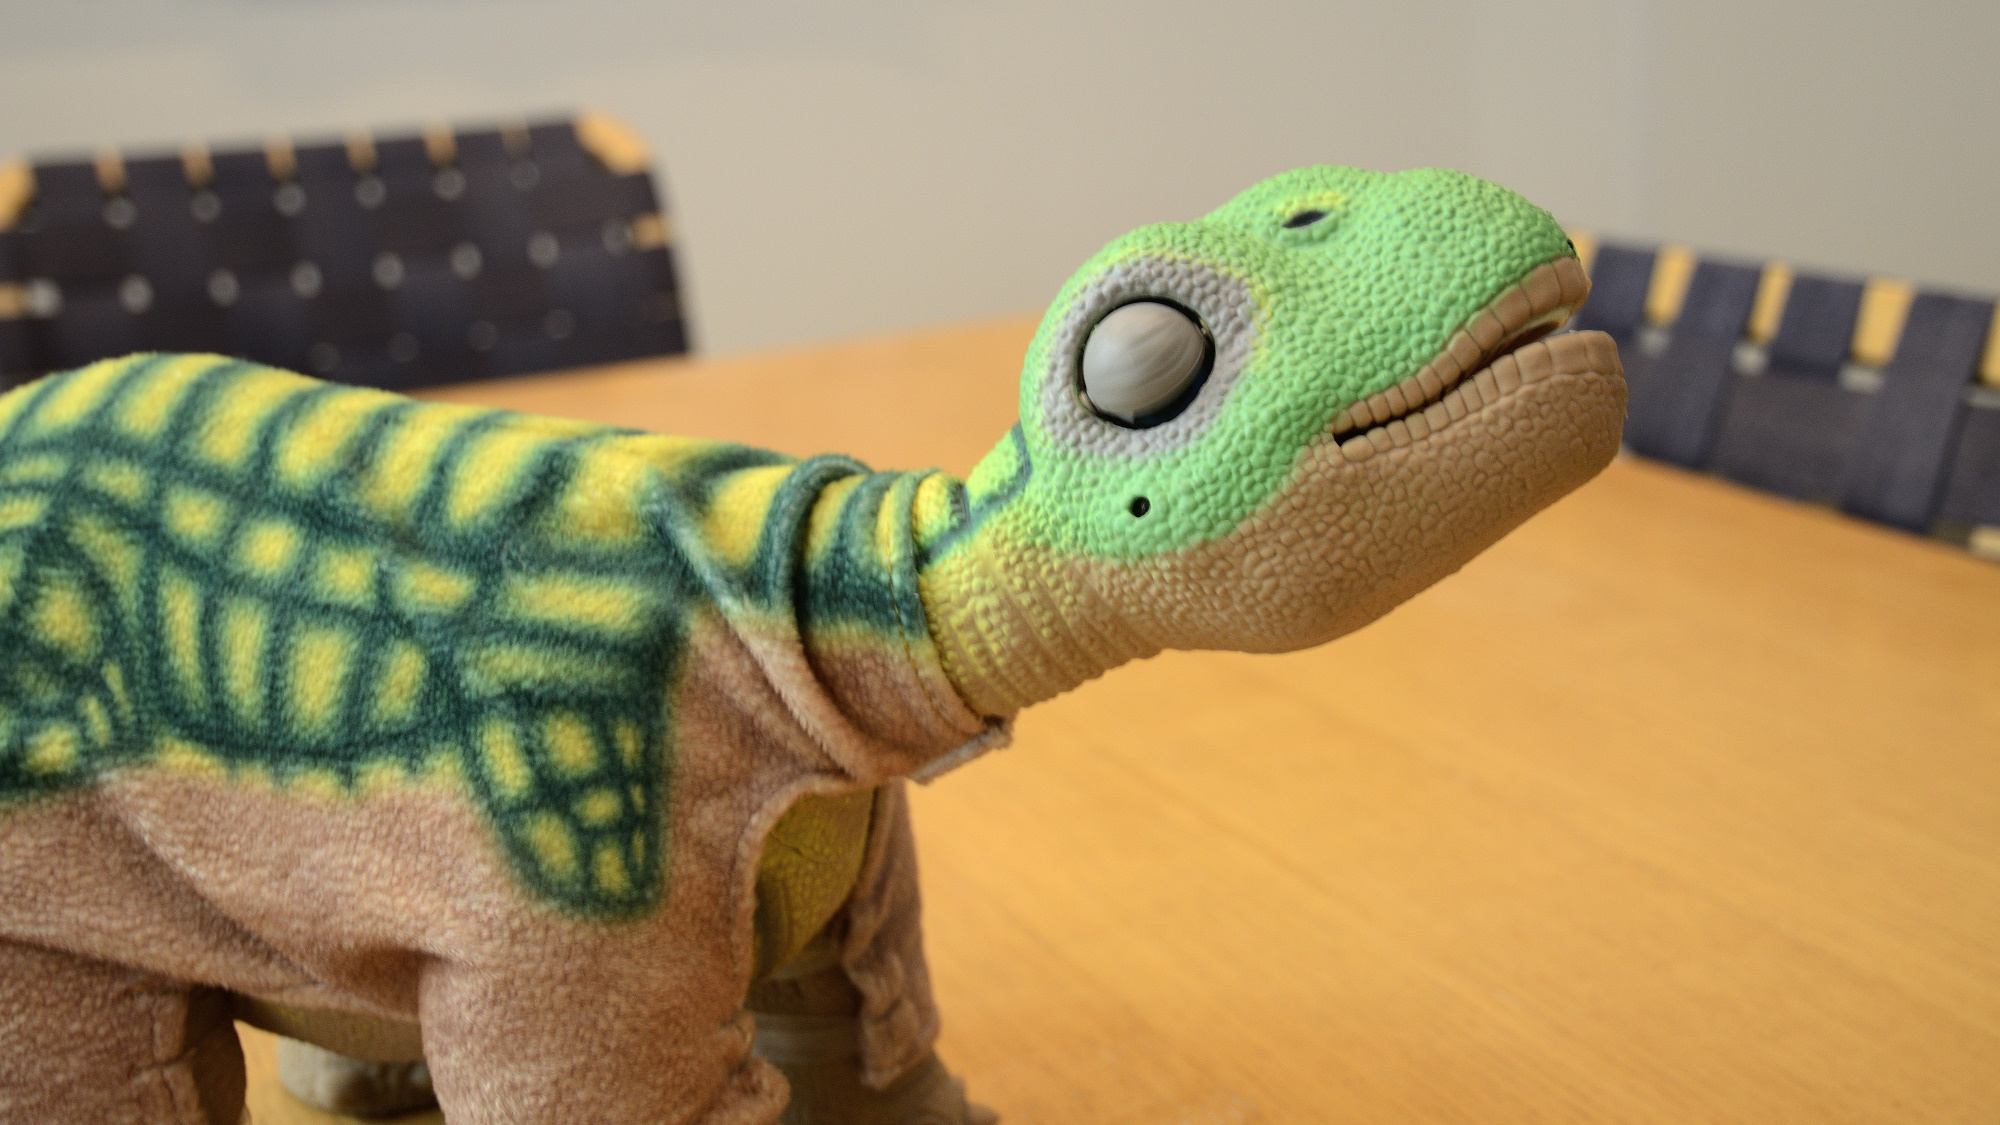 A Pleo robot comfortably stretching his body.